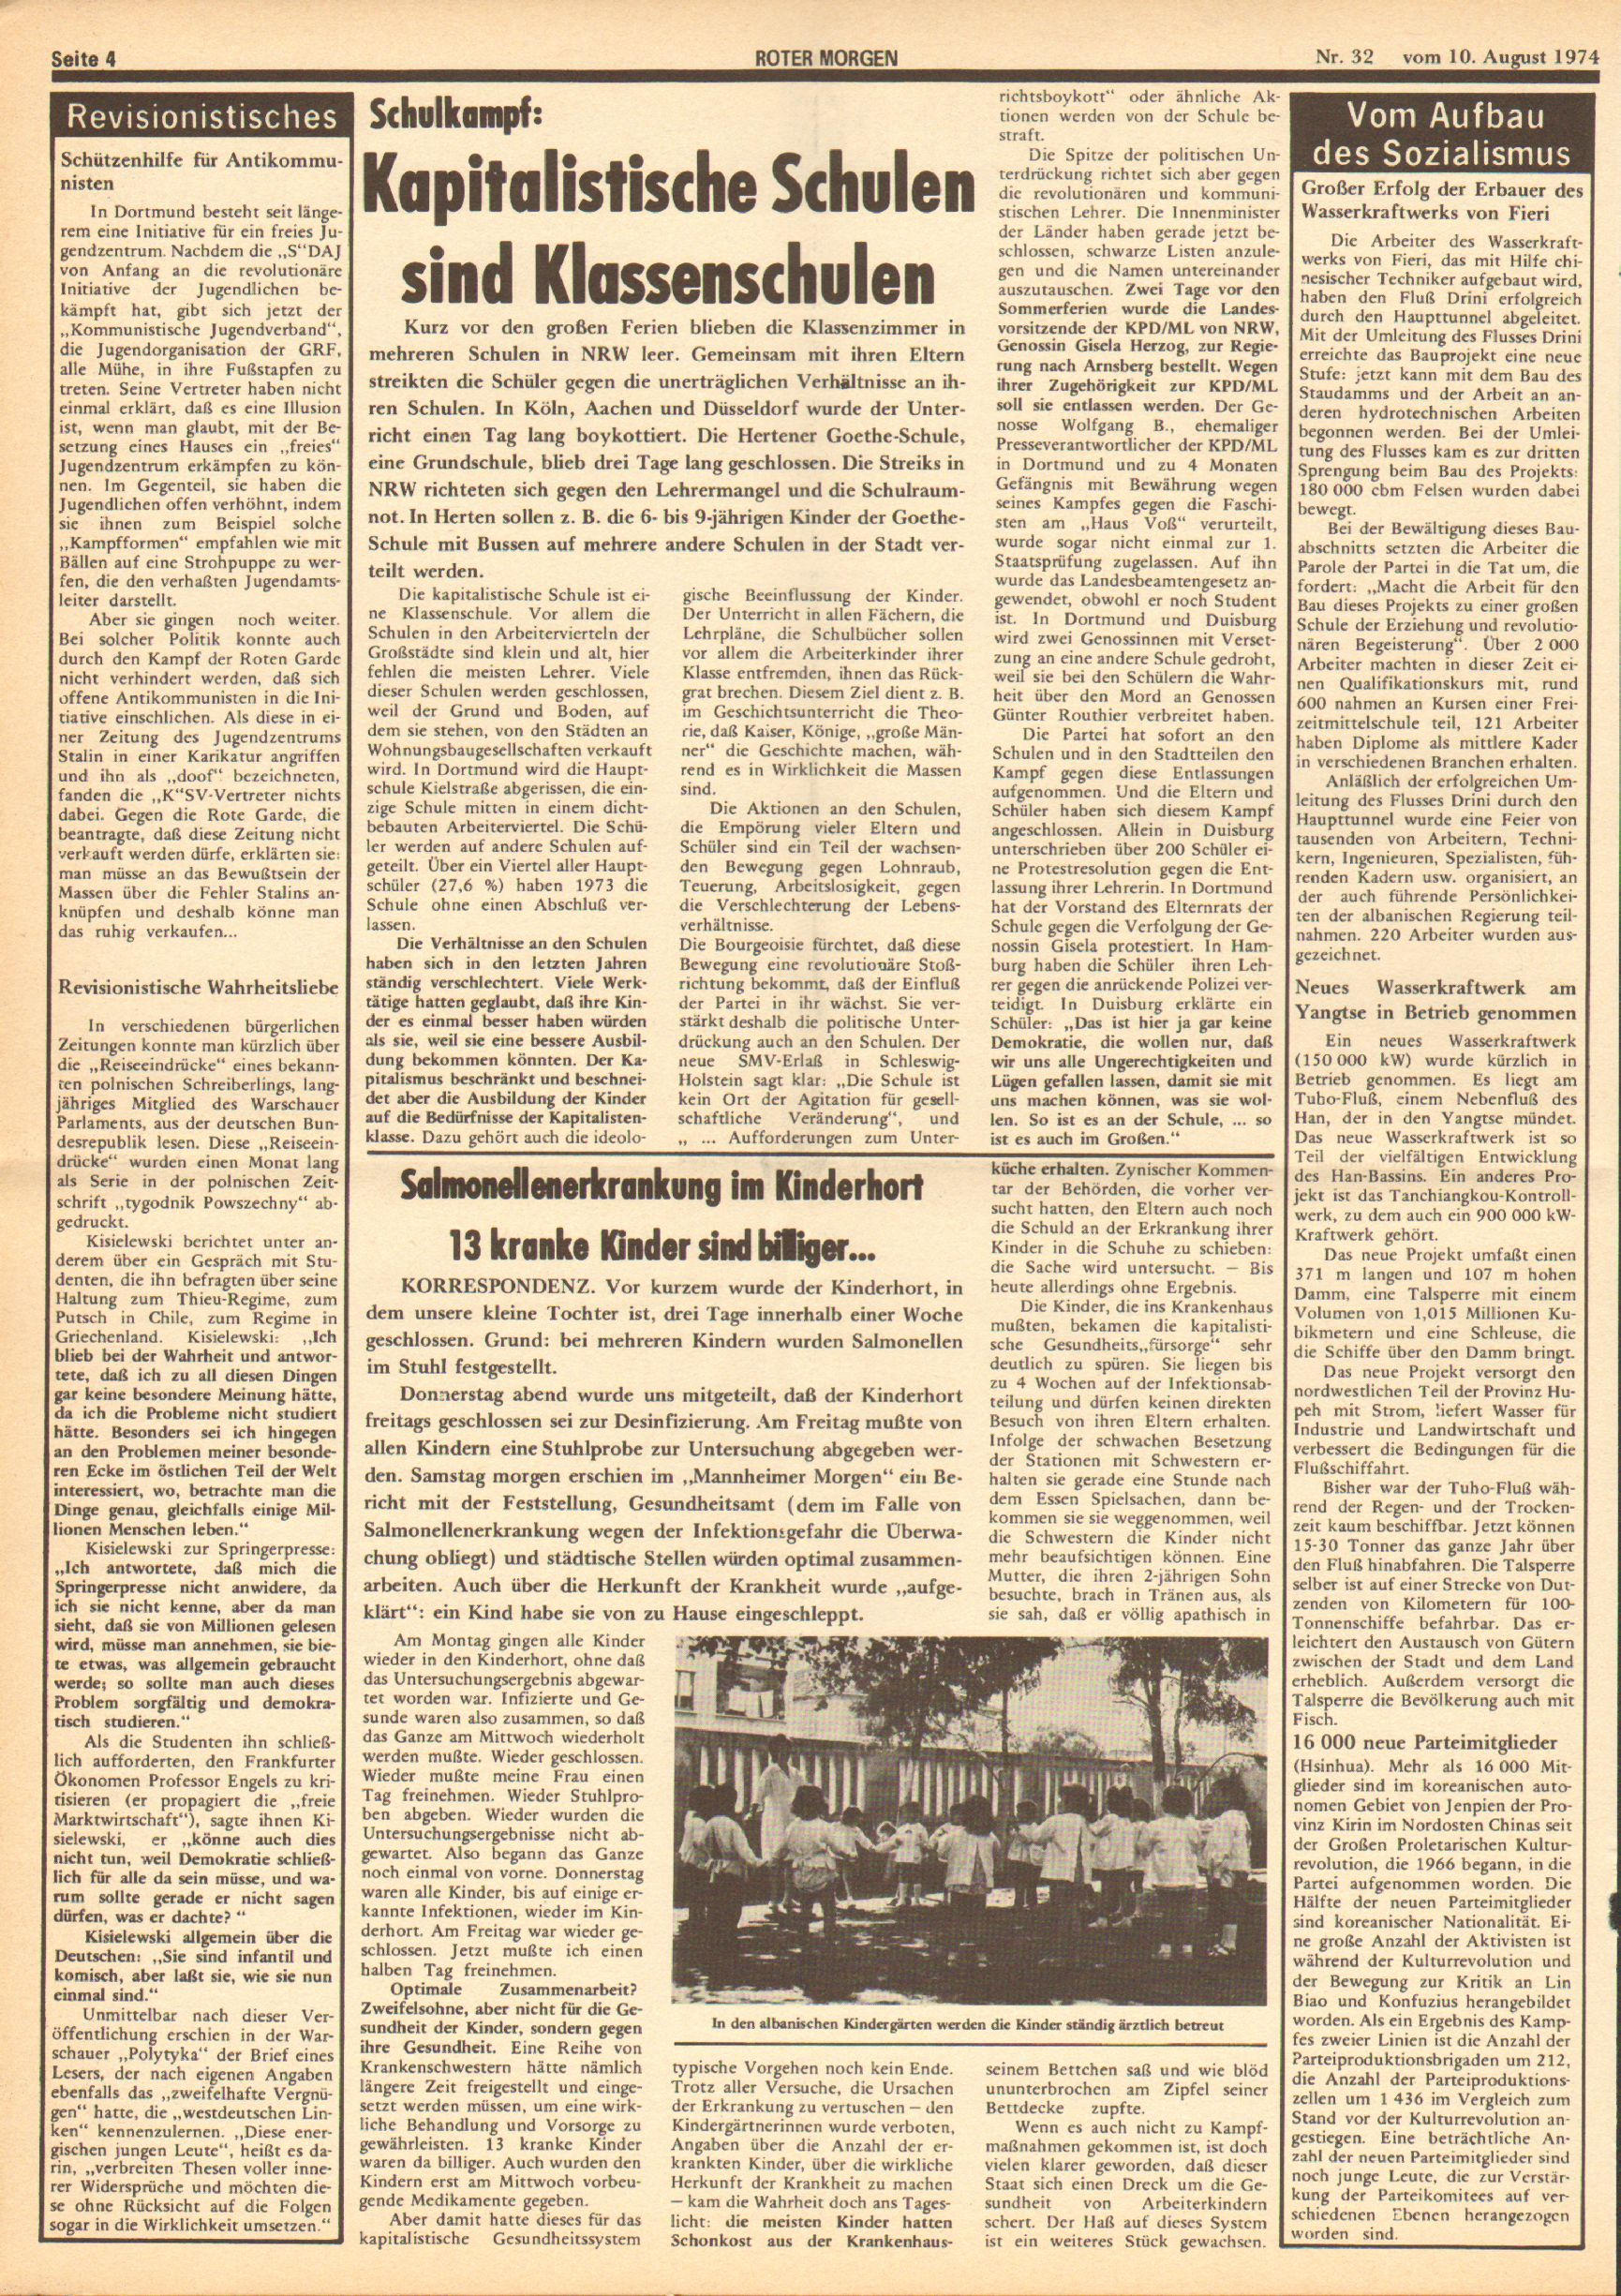 Roter Morgen, 8. Jg., 10. August 1974, Nr. 32, Seite 4